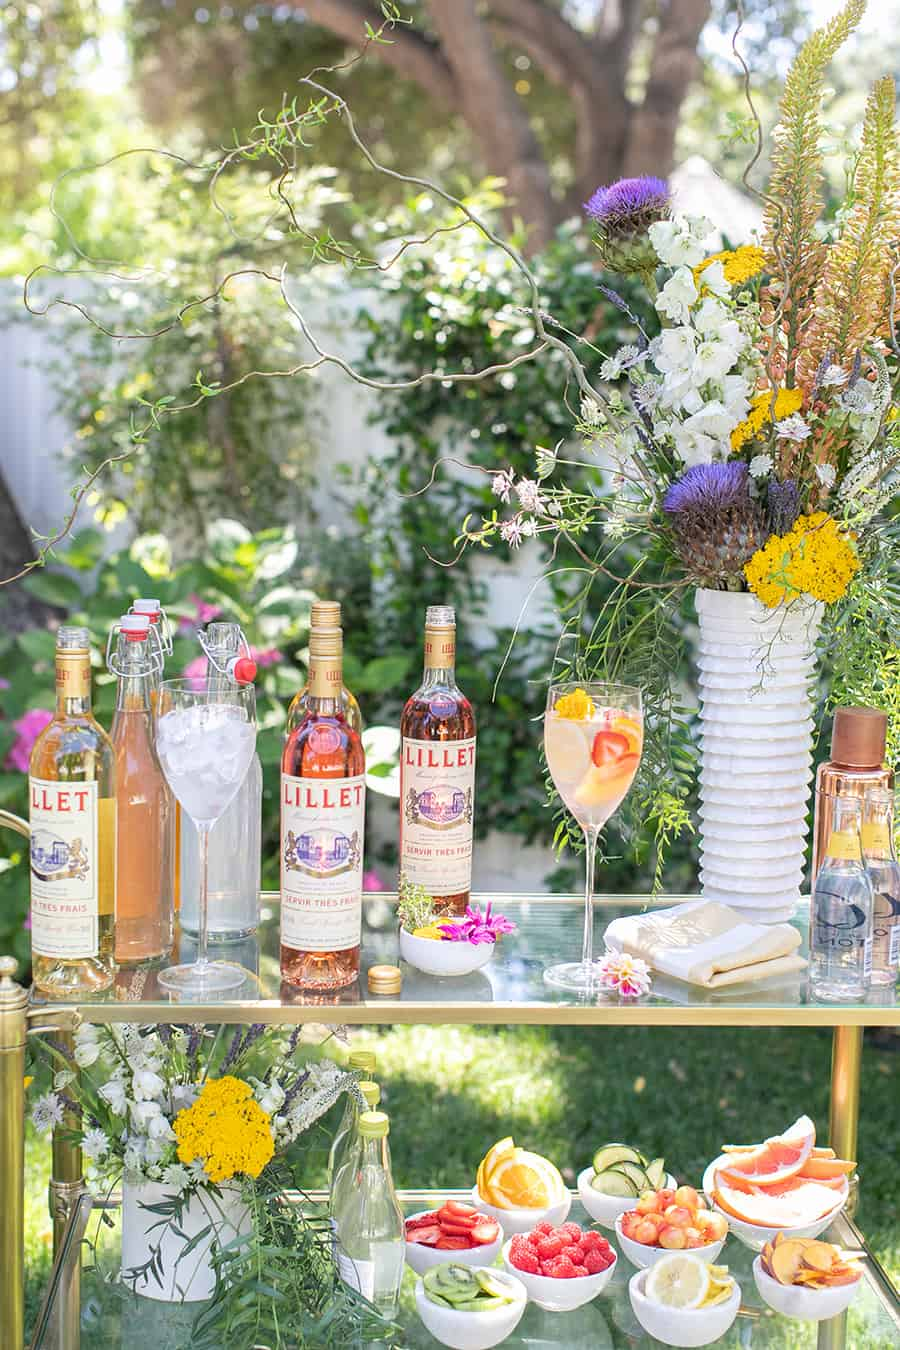 Bottles of Lillet on gold bar cart with flowers.